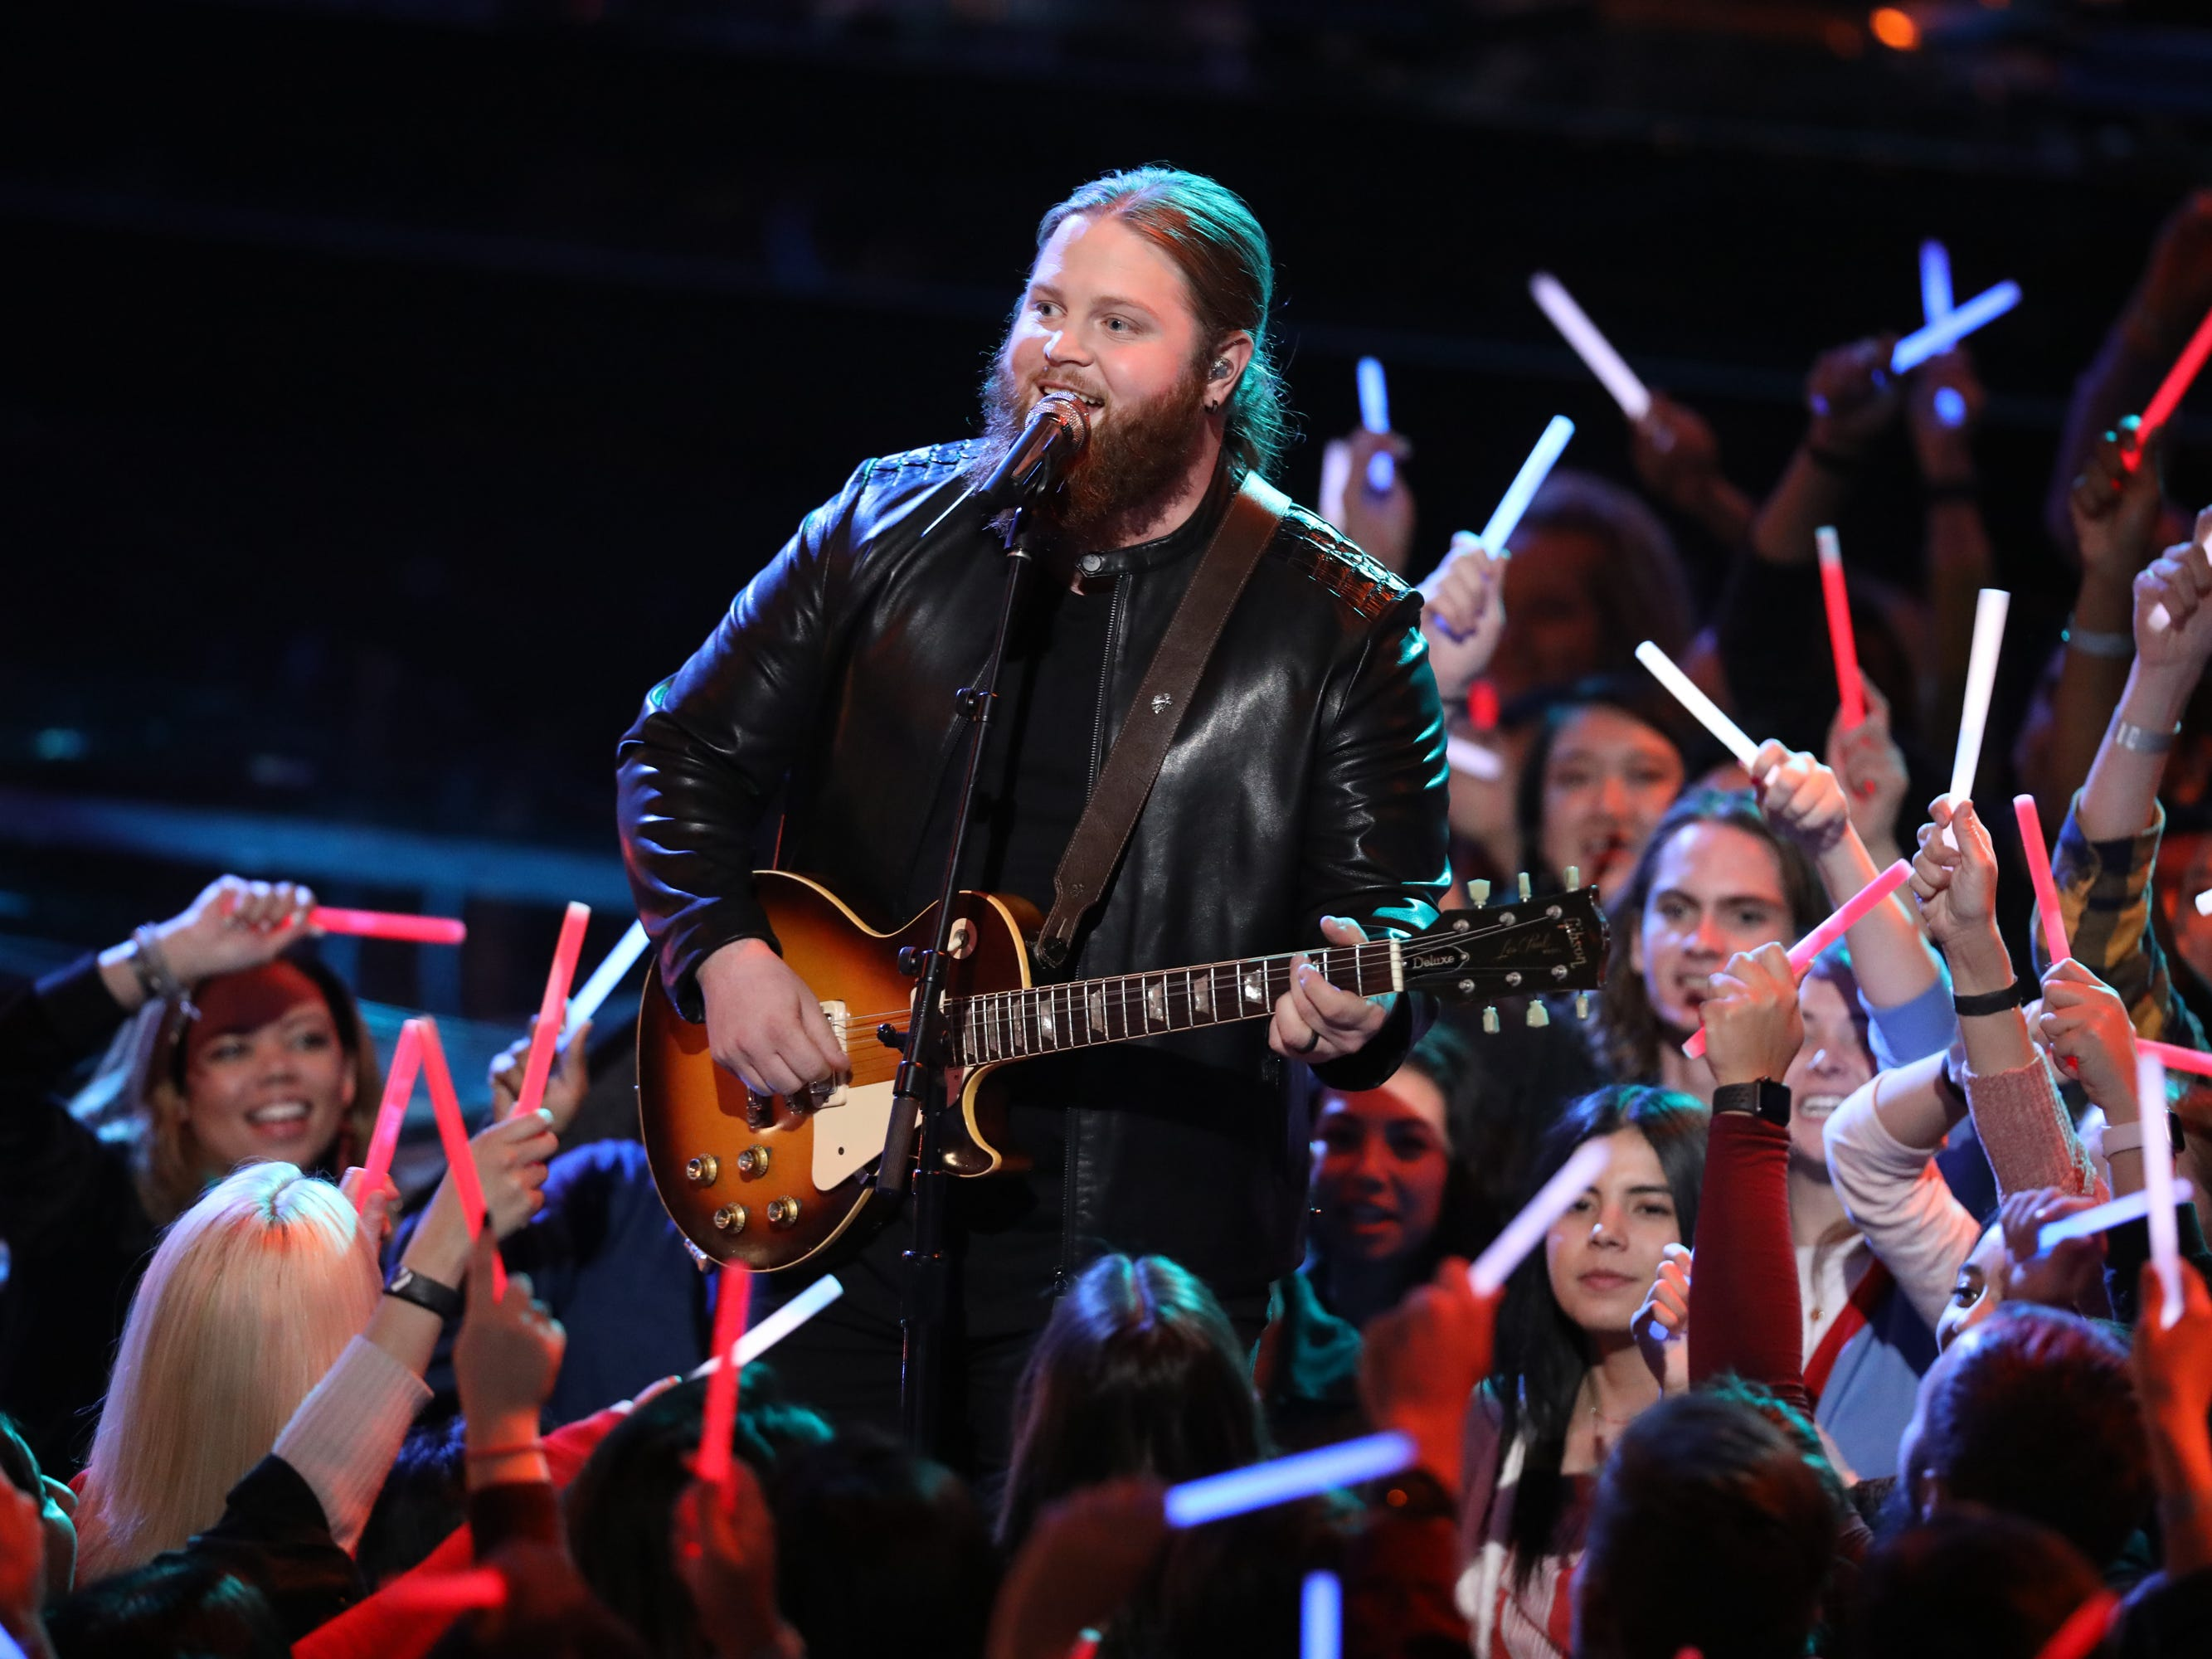 """Chris Kroeze kicked off part one of """"The Voice"""" finale Dec. 17 with his cover of Lynyrd Skynyrd's """"Sweet Home Alabama."""""""